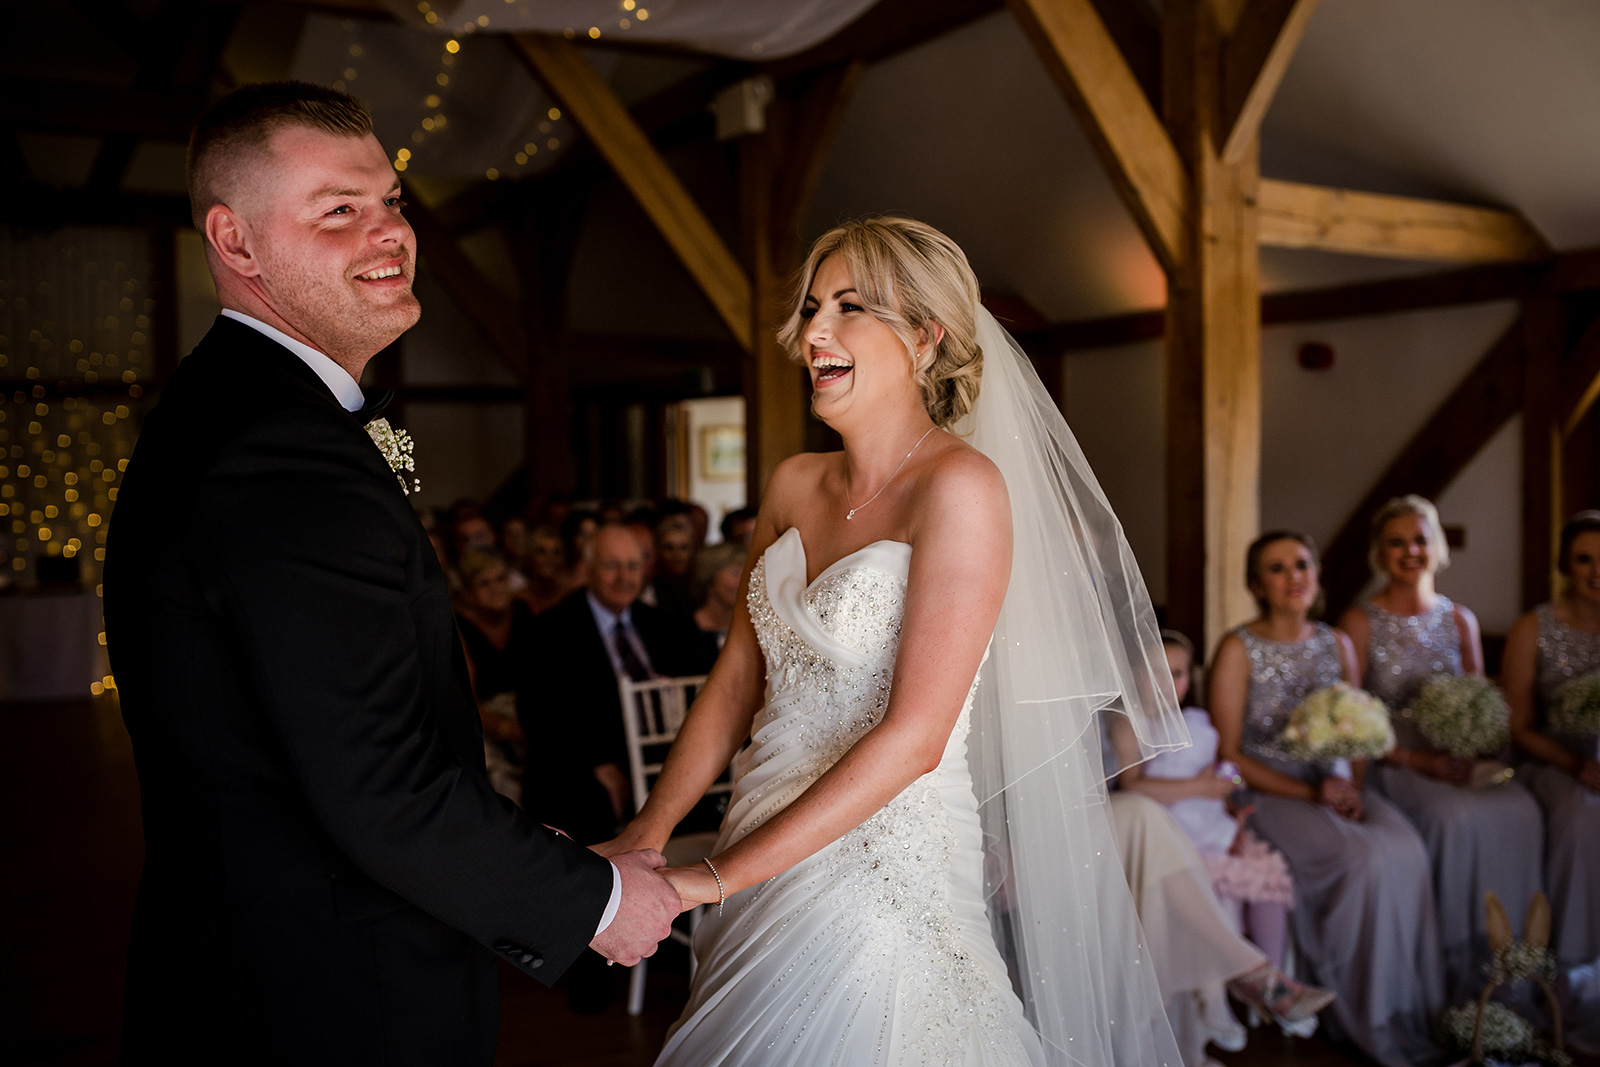 Sandhole Oak Barn Wedding in Congleton